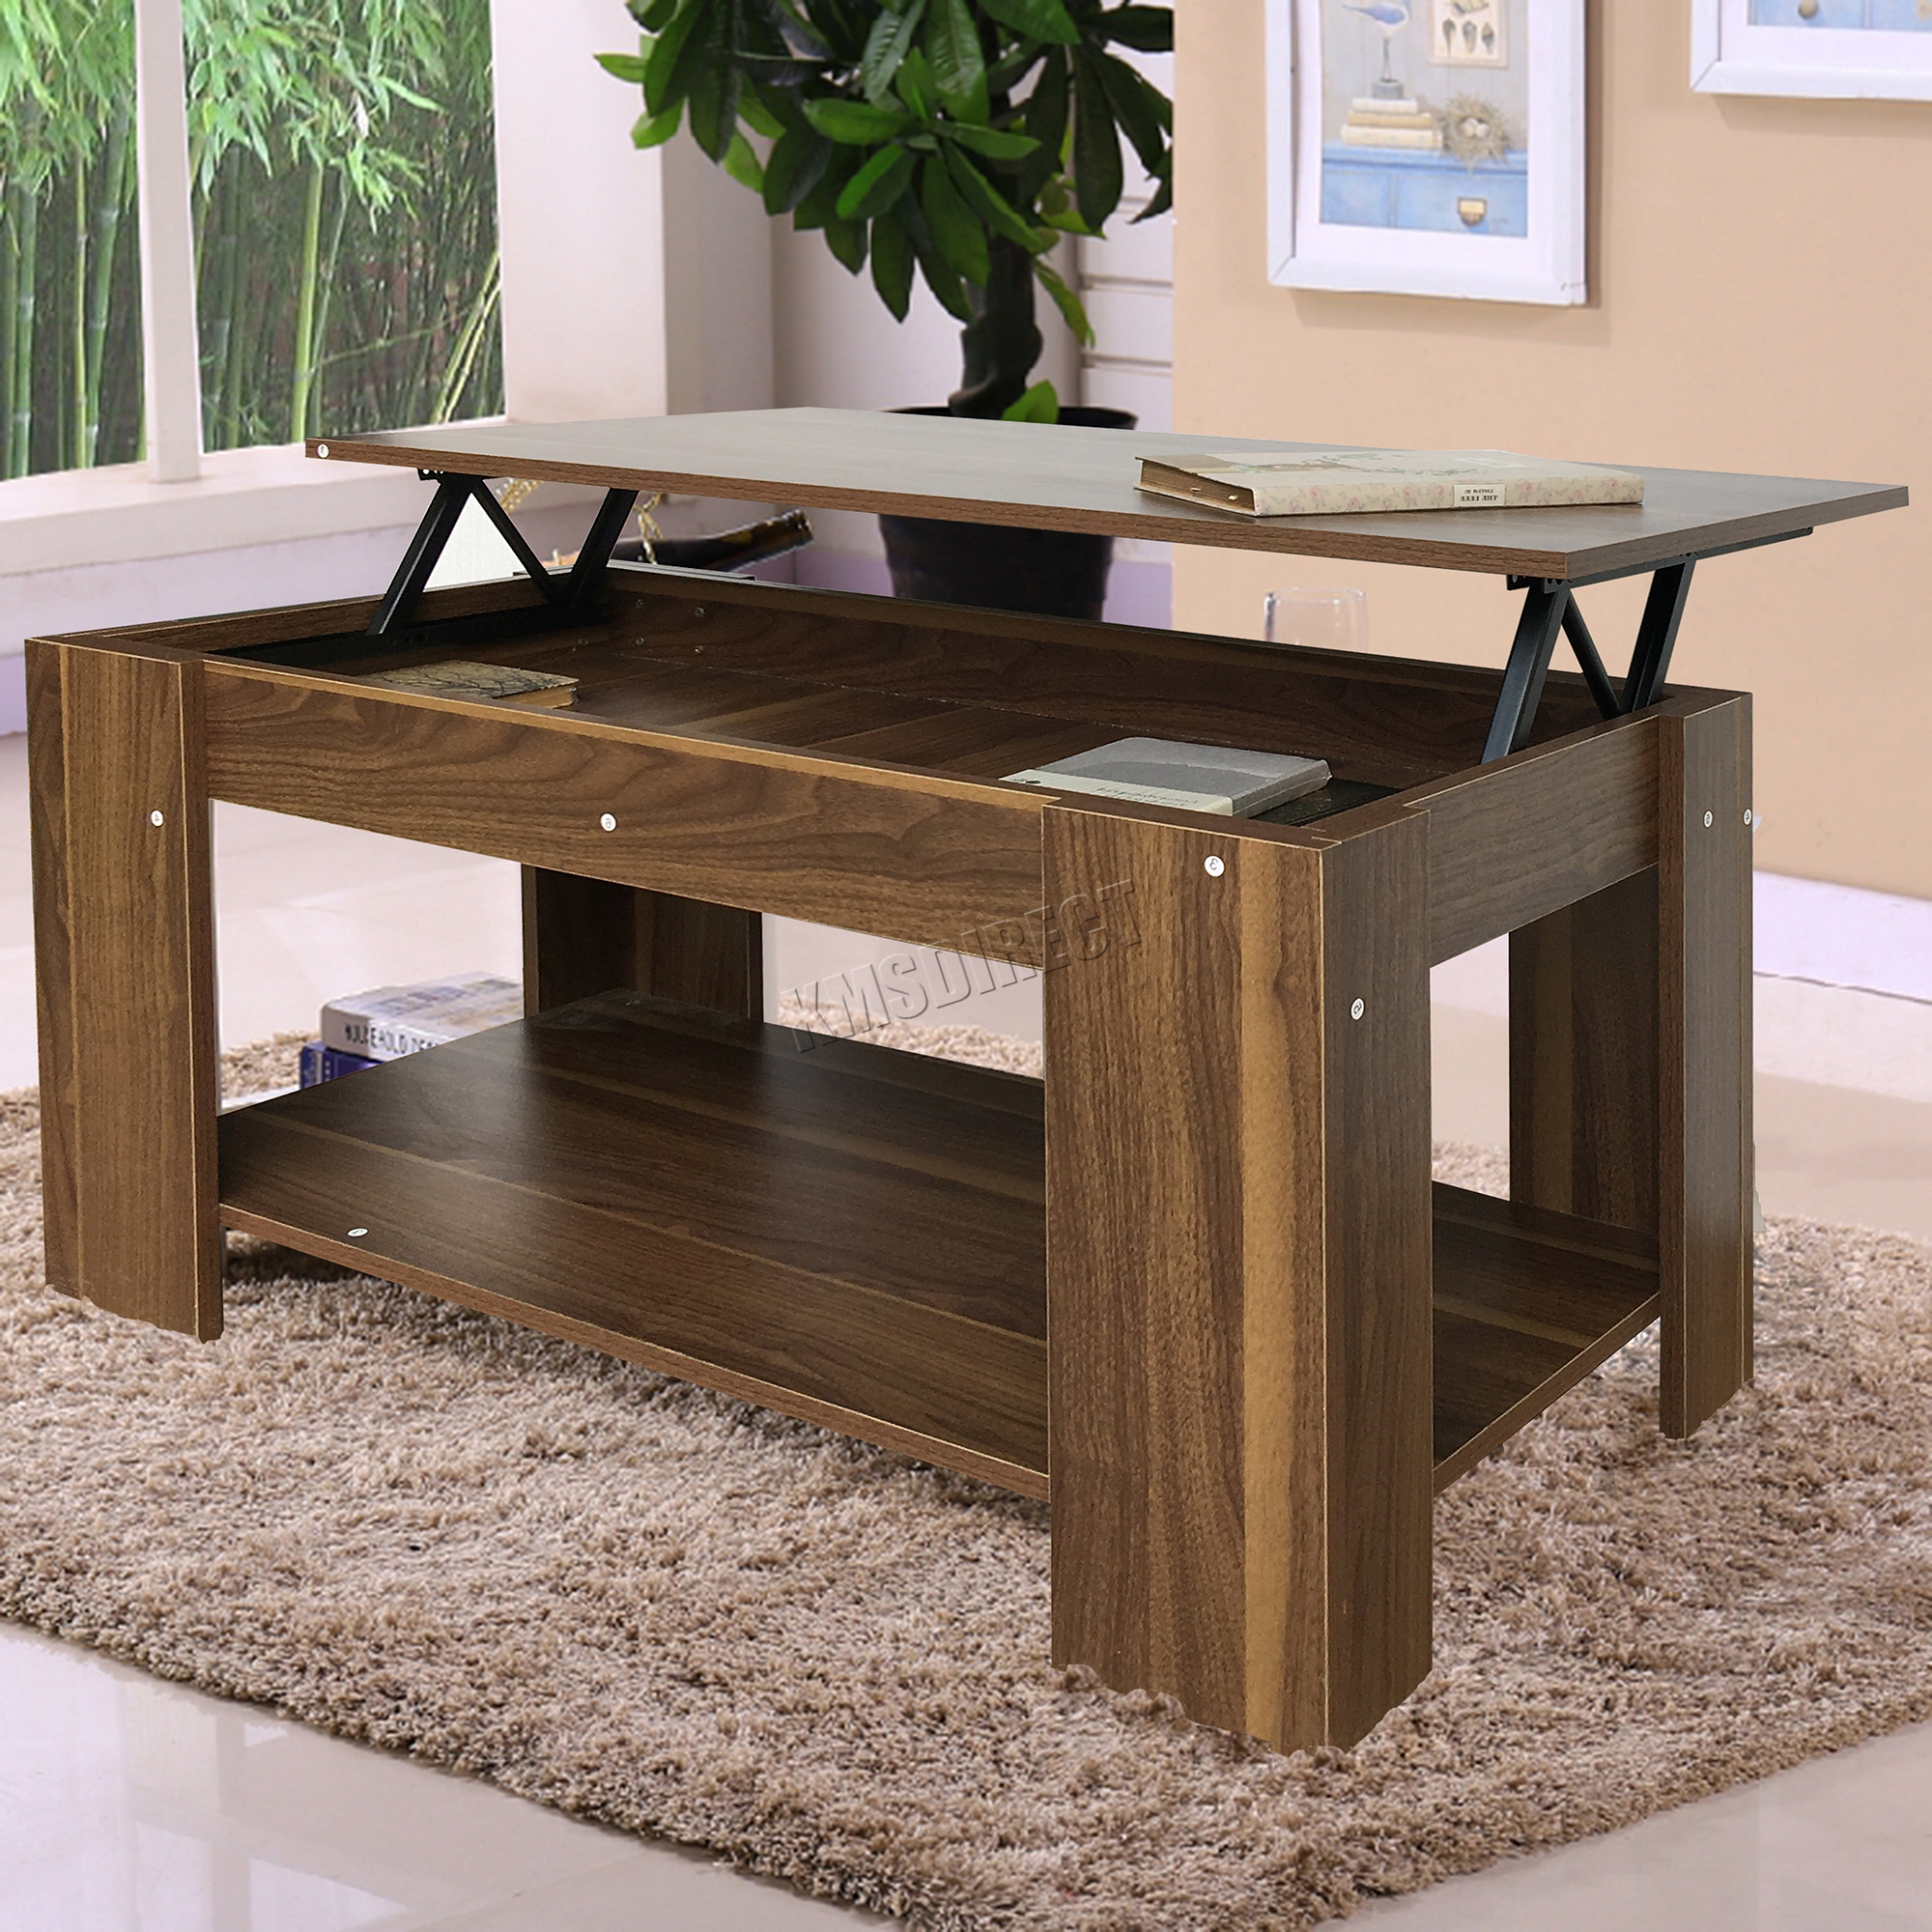 Foxhunter lift up top coffee table with storage shelf for Does a living room need a coffee table